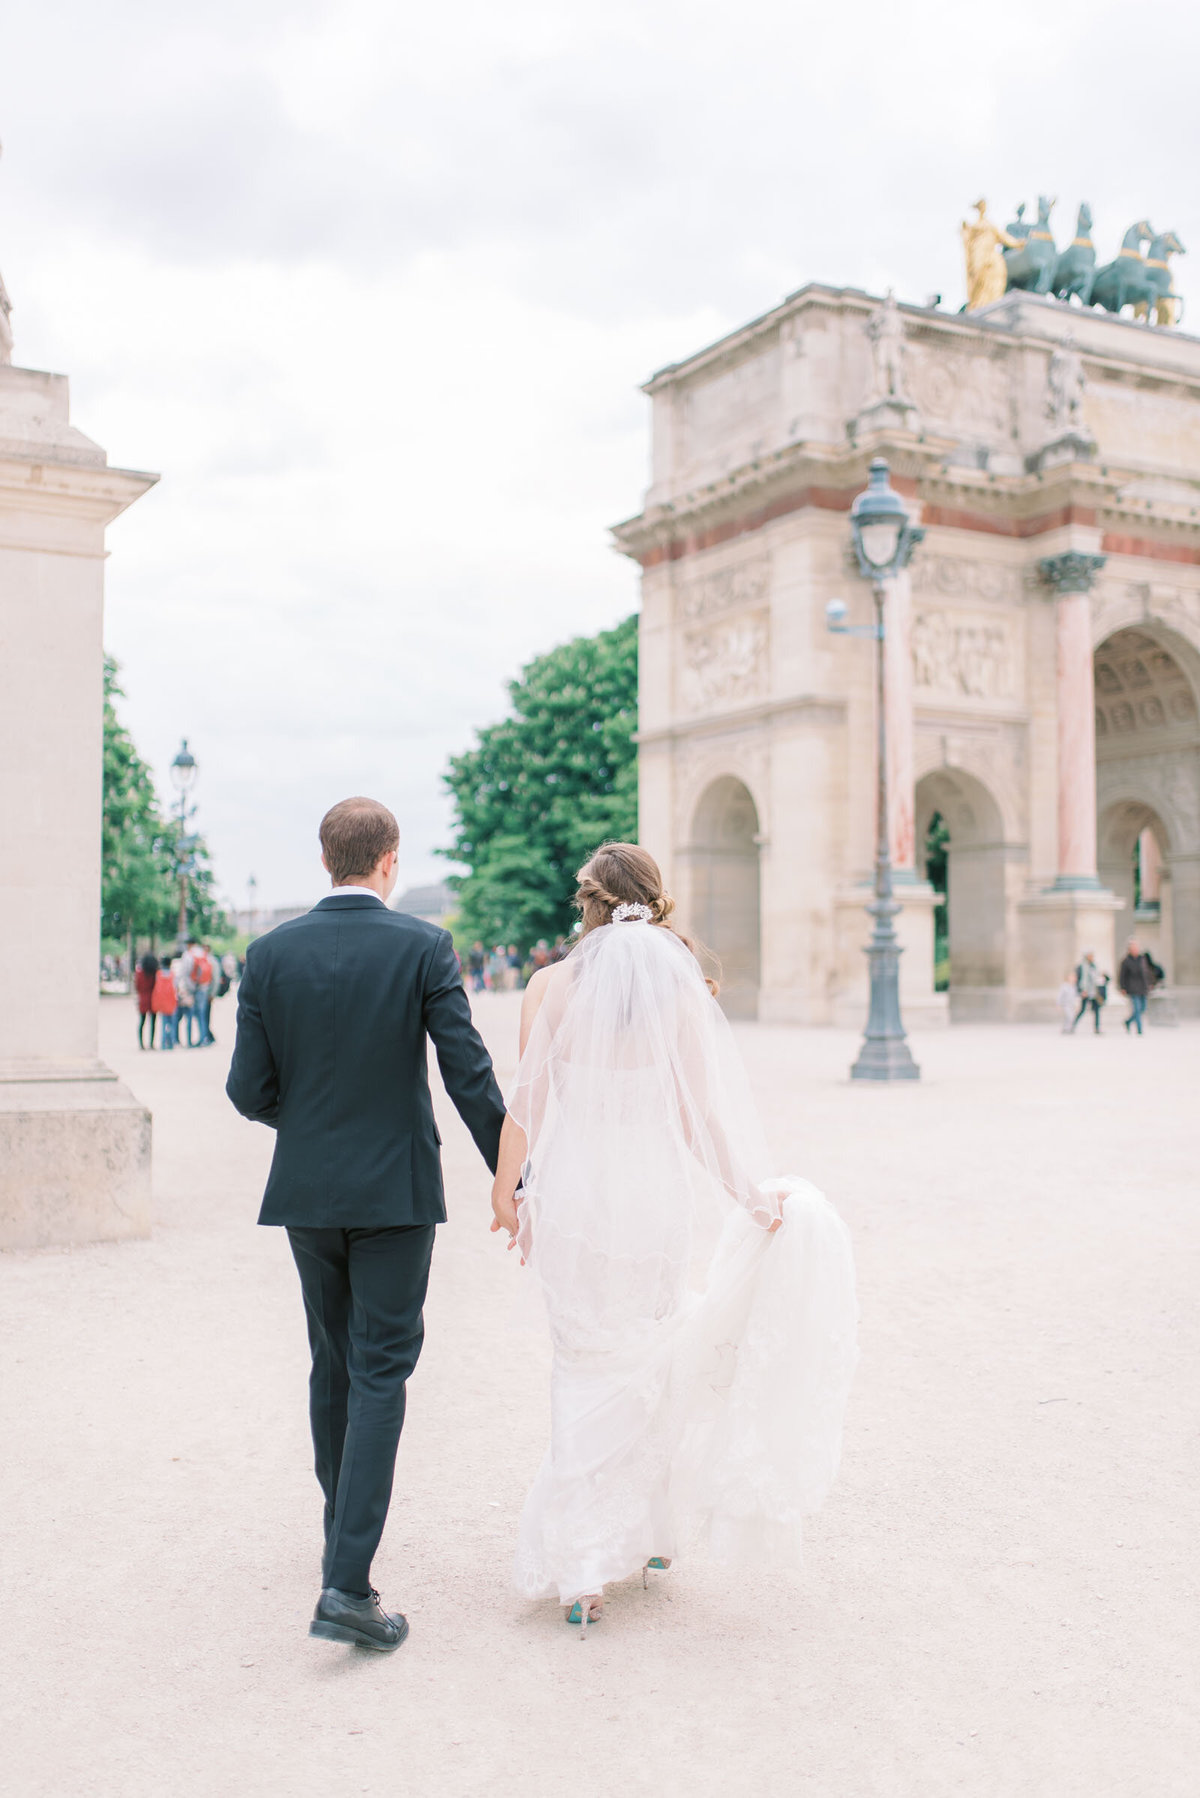 marcelaploskerphotography-paris_wedding-55